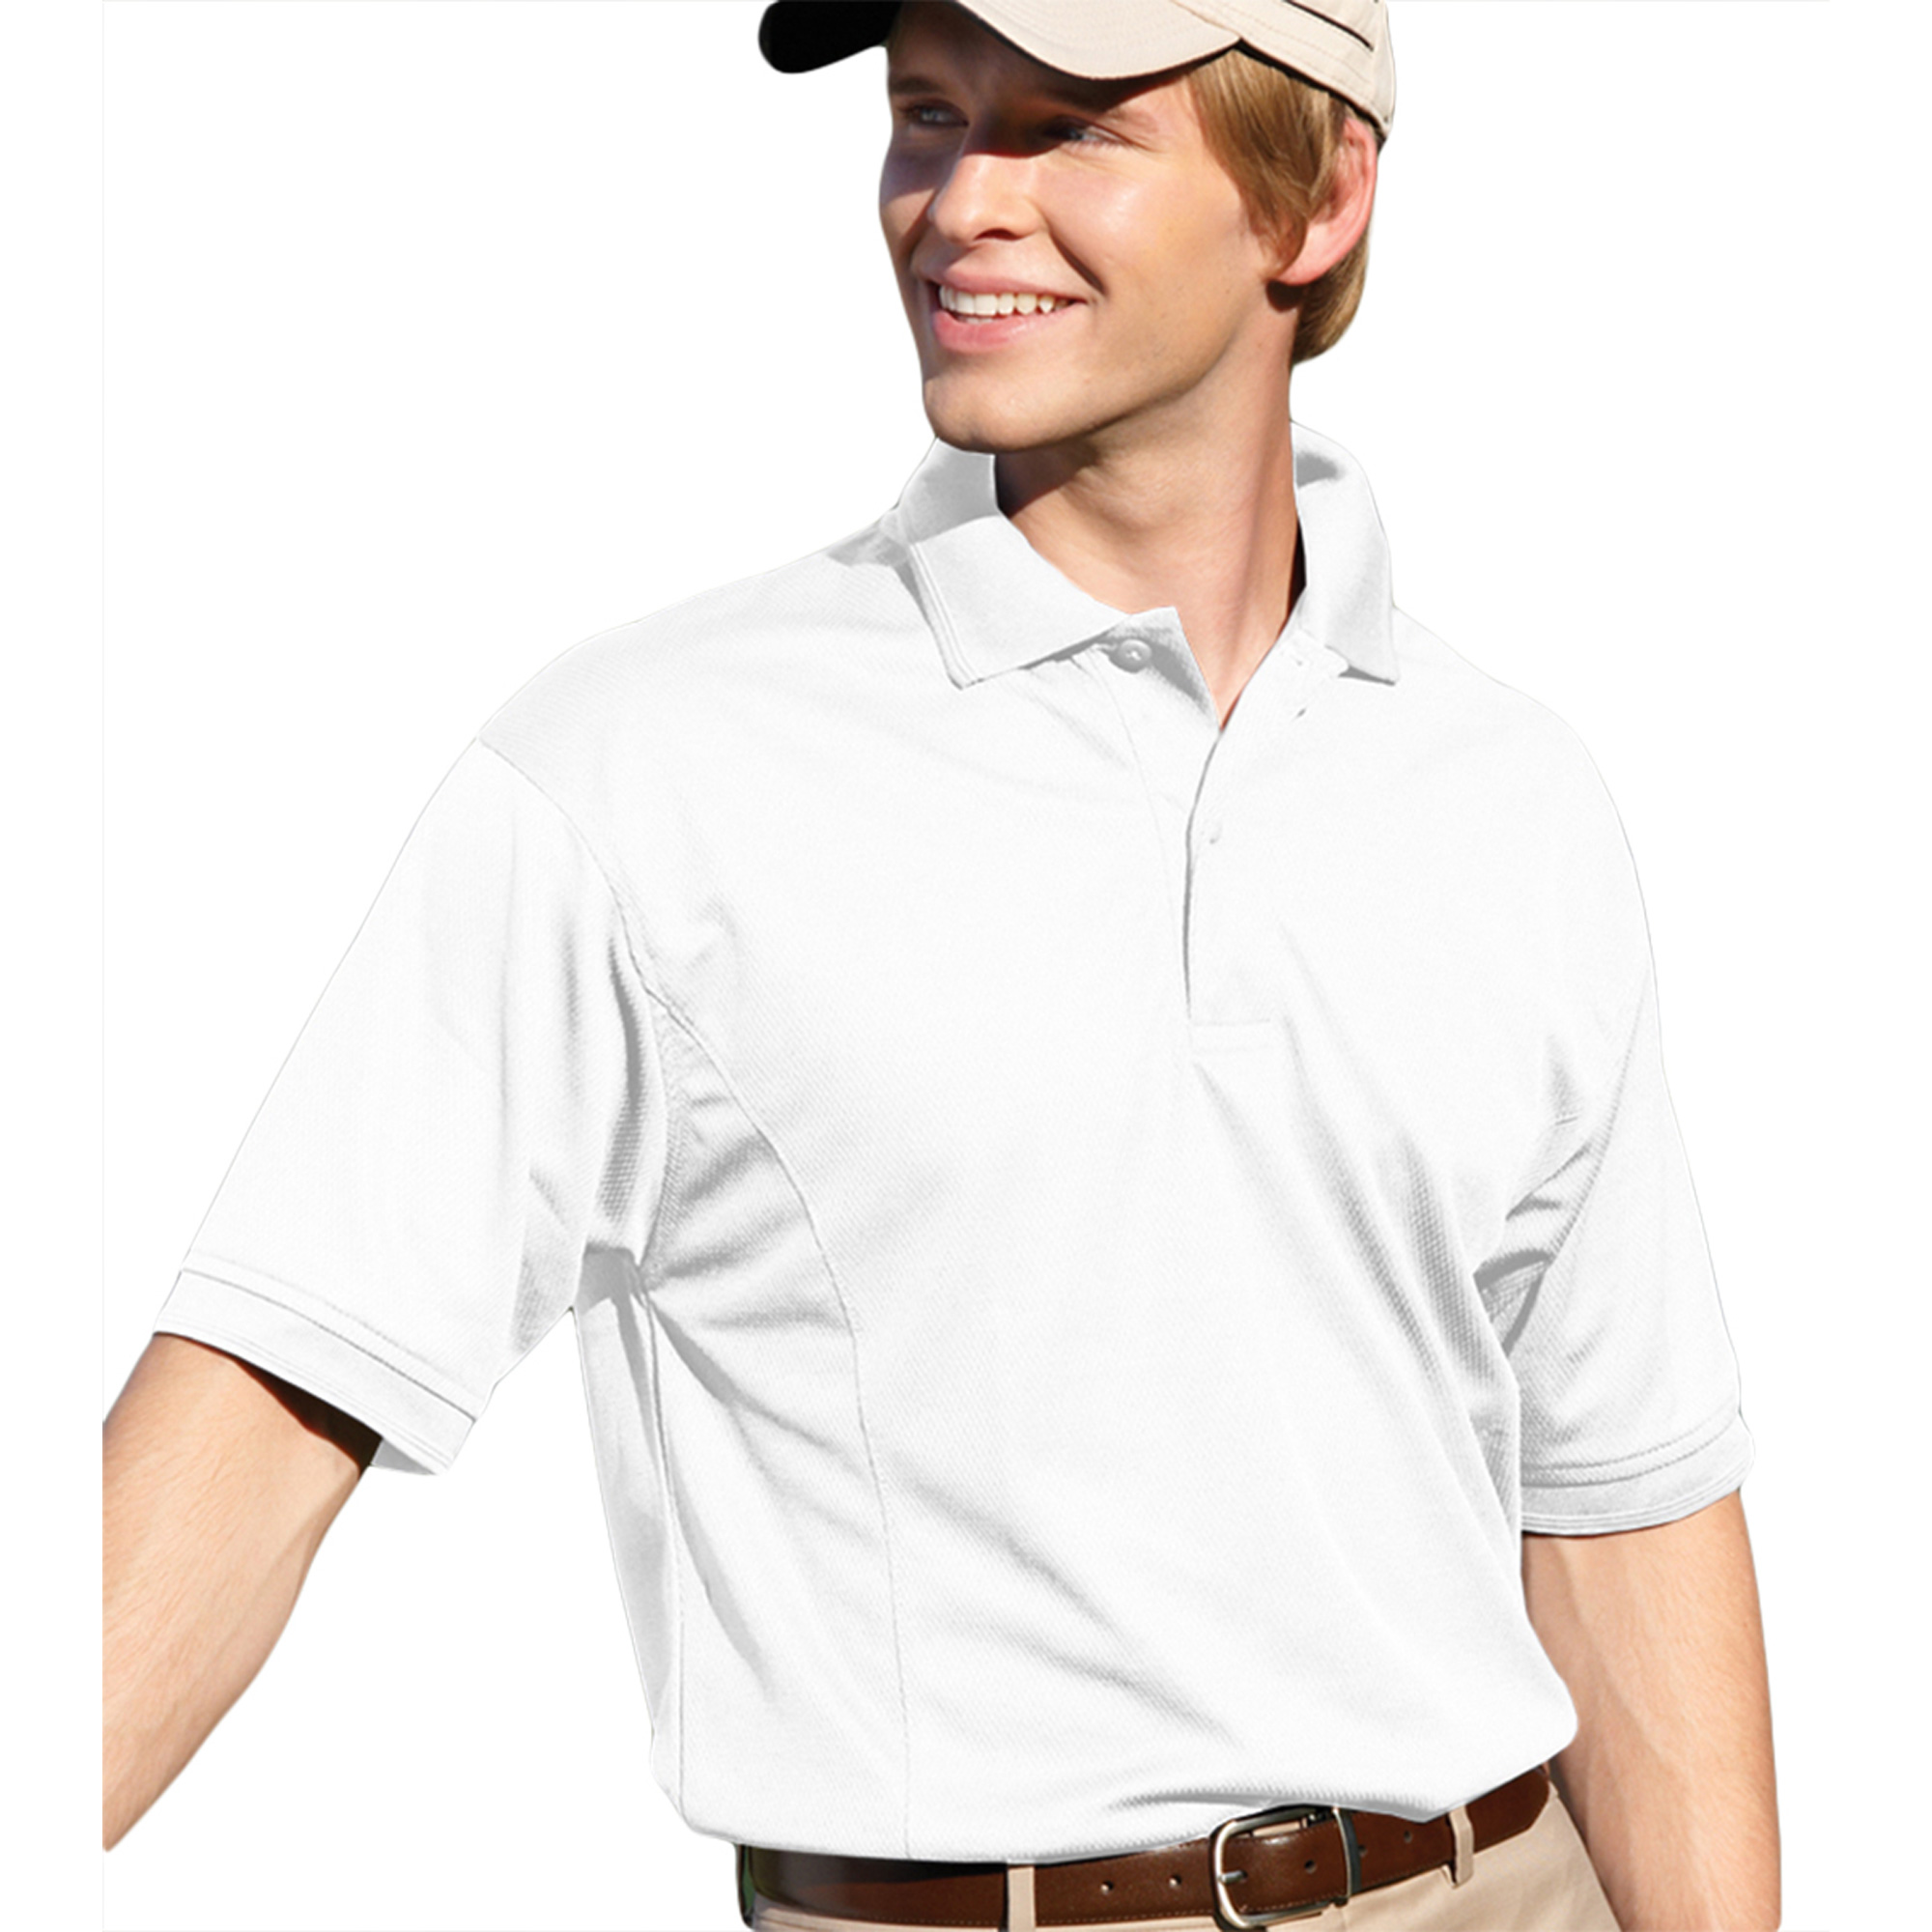 00820599181023 MENS PERFORMANCE GOLF SHIRT 2800 BLACK S